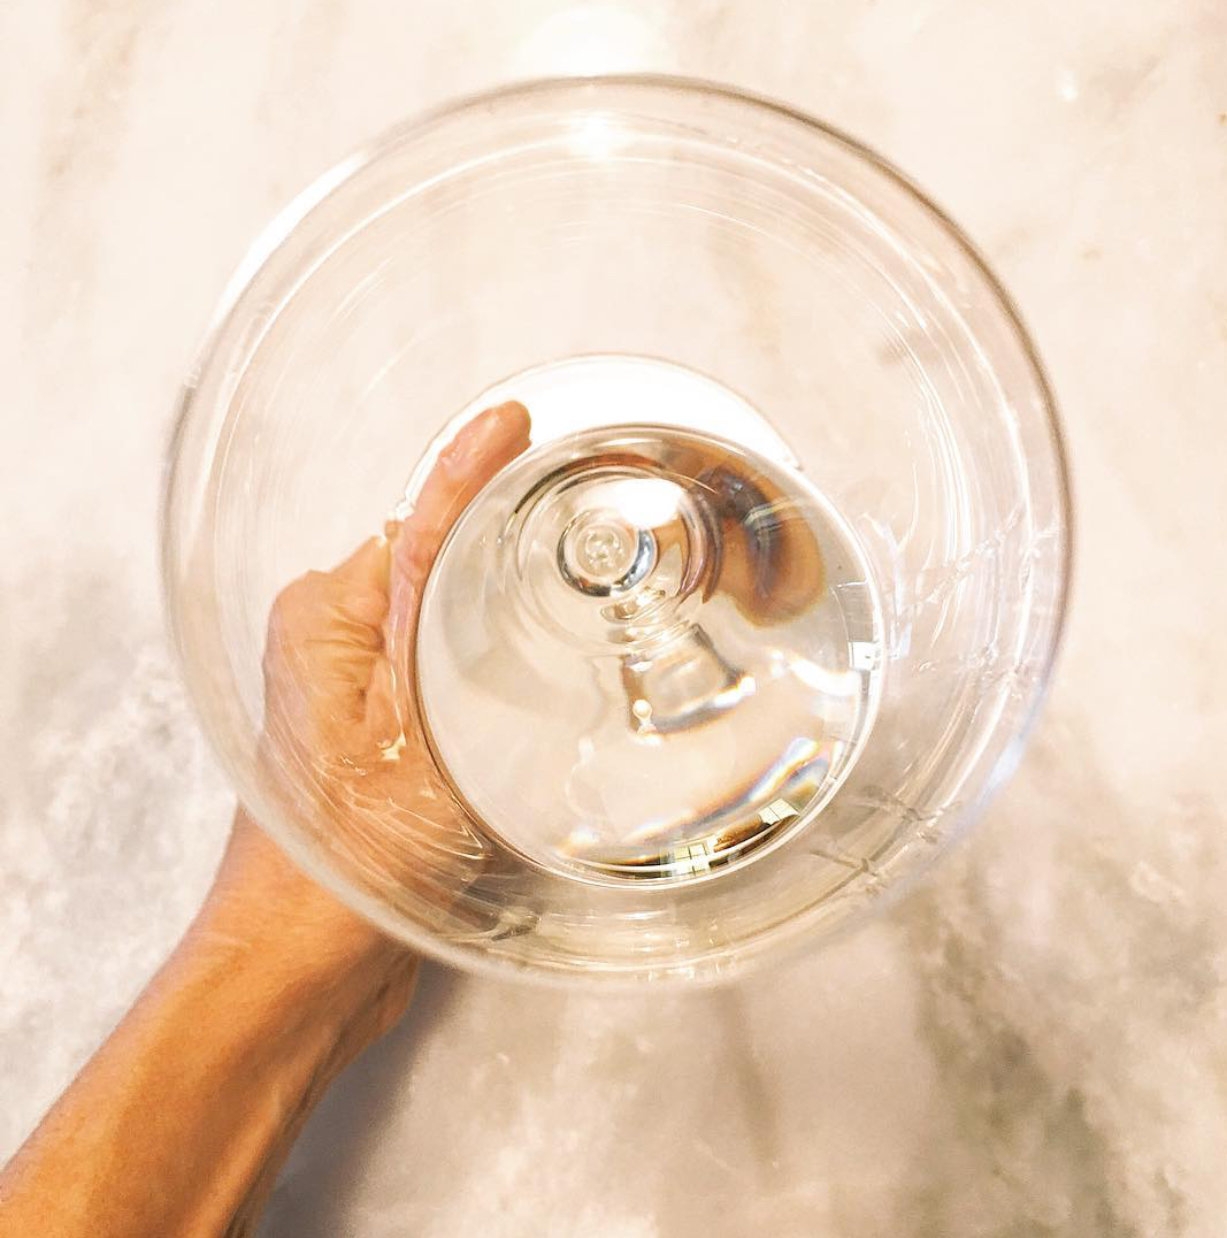 Wine glass with white wine on a marble table